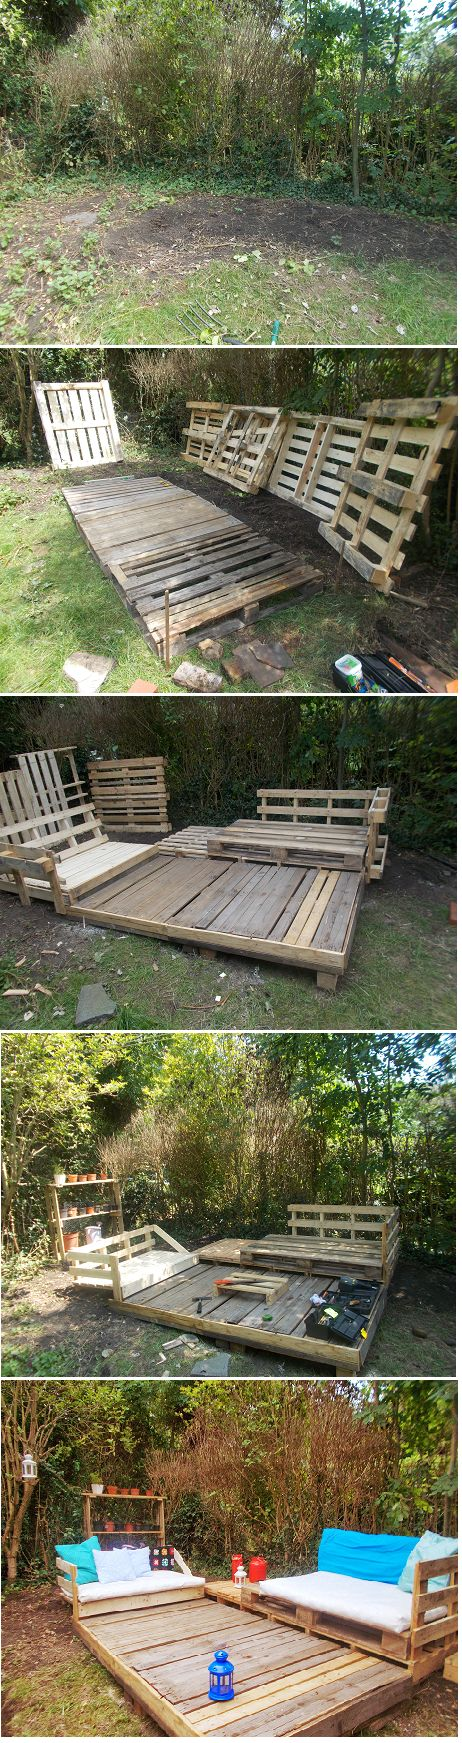 My pallet project. Thank you to Pinterest for all the ideas I have collected. I built this from free scab pallets and leftover fabric and unused cushions. I only spent a 20 quid for candle deco and some plants. This is my nest...